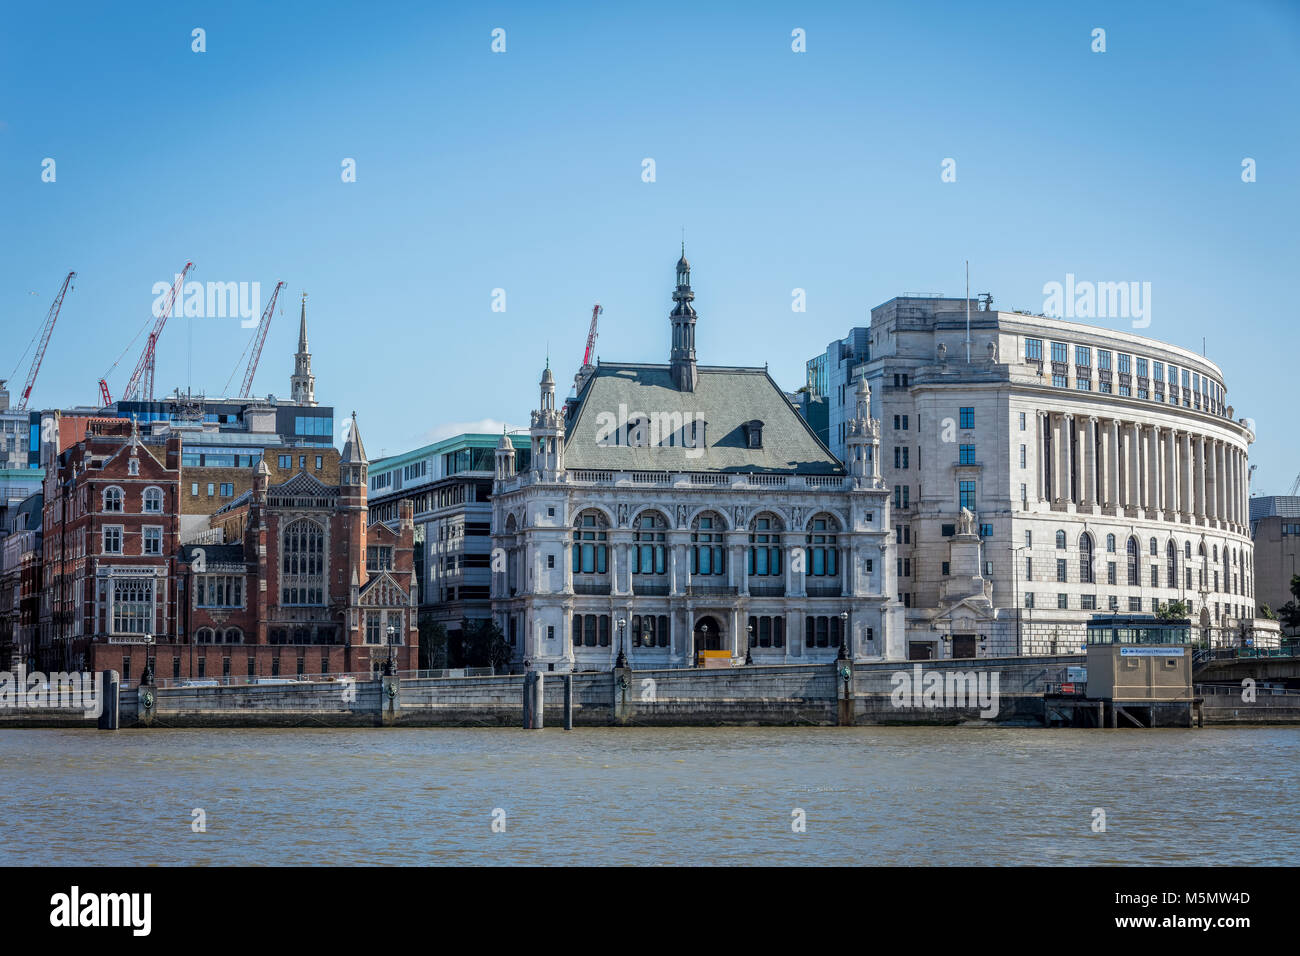 Unilever House Building in London - Stock Image